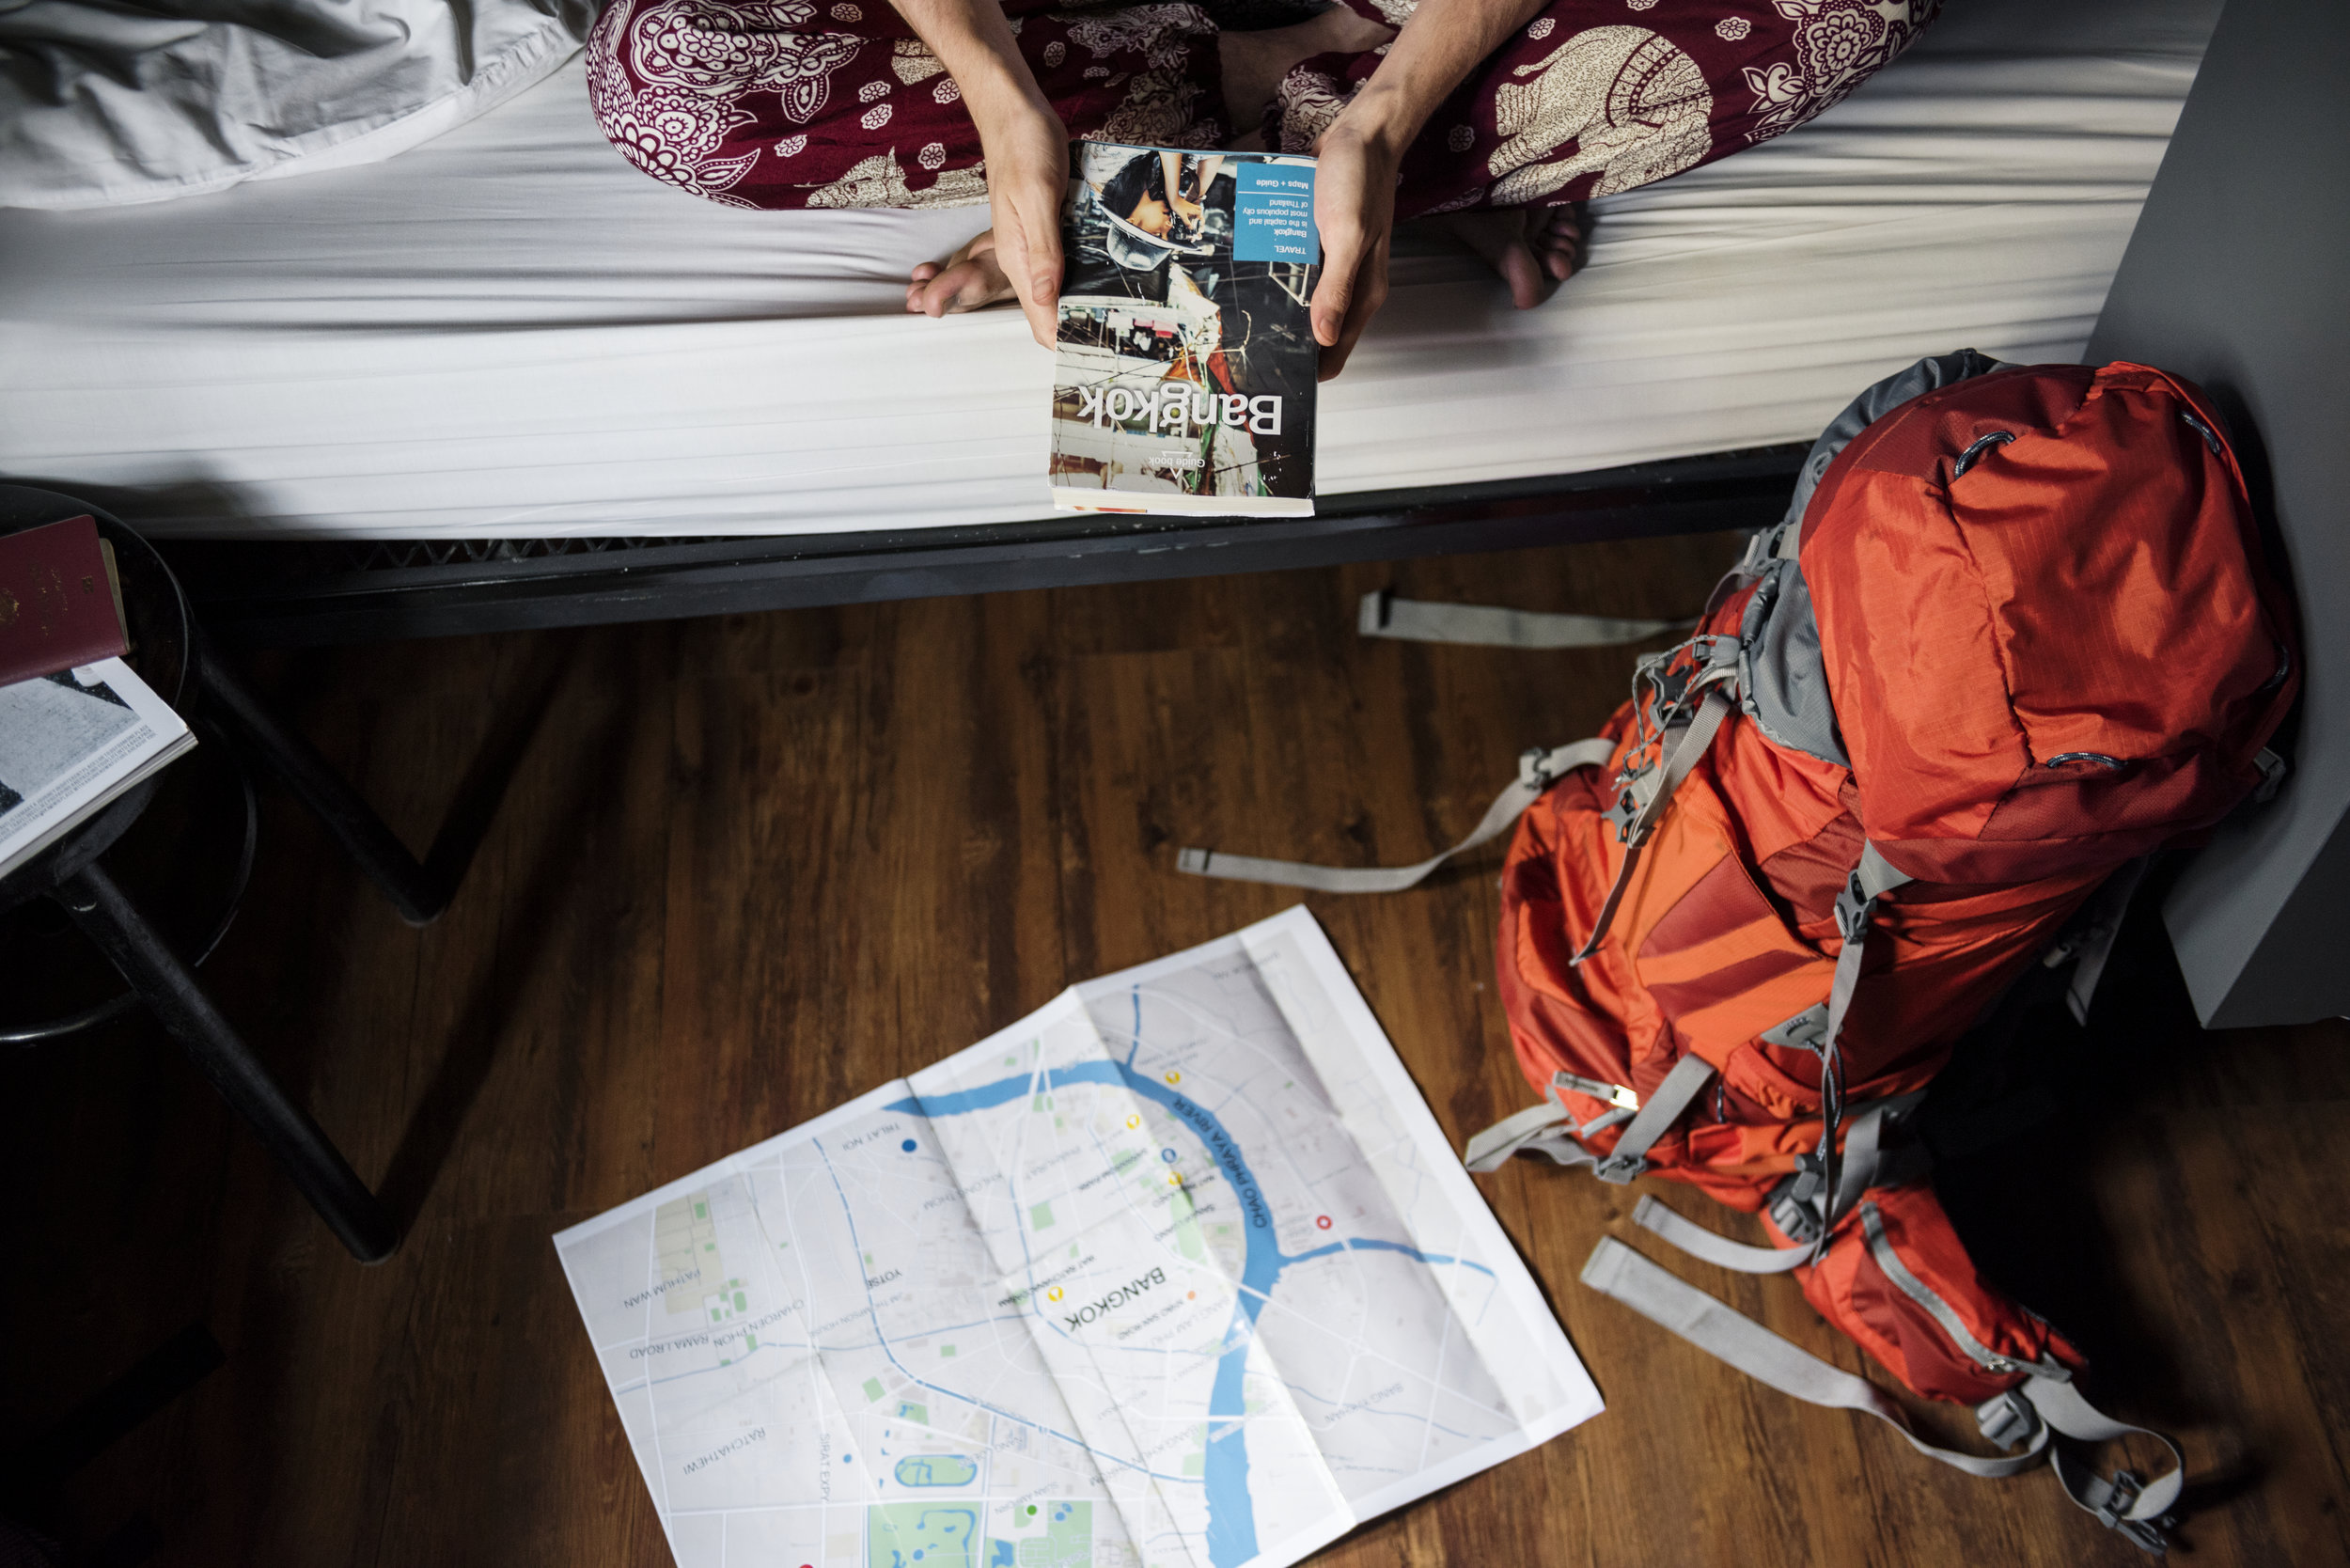 Hands holding Bangkok Thailand travel guide book with map on the floor